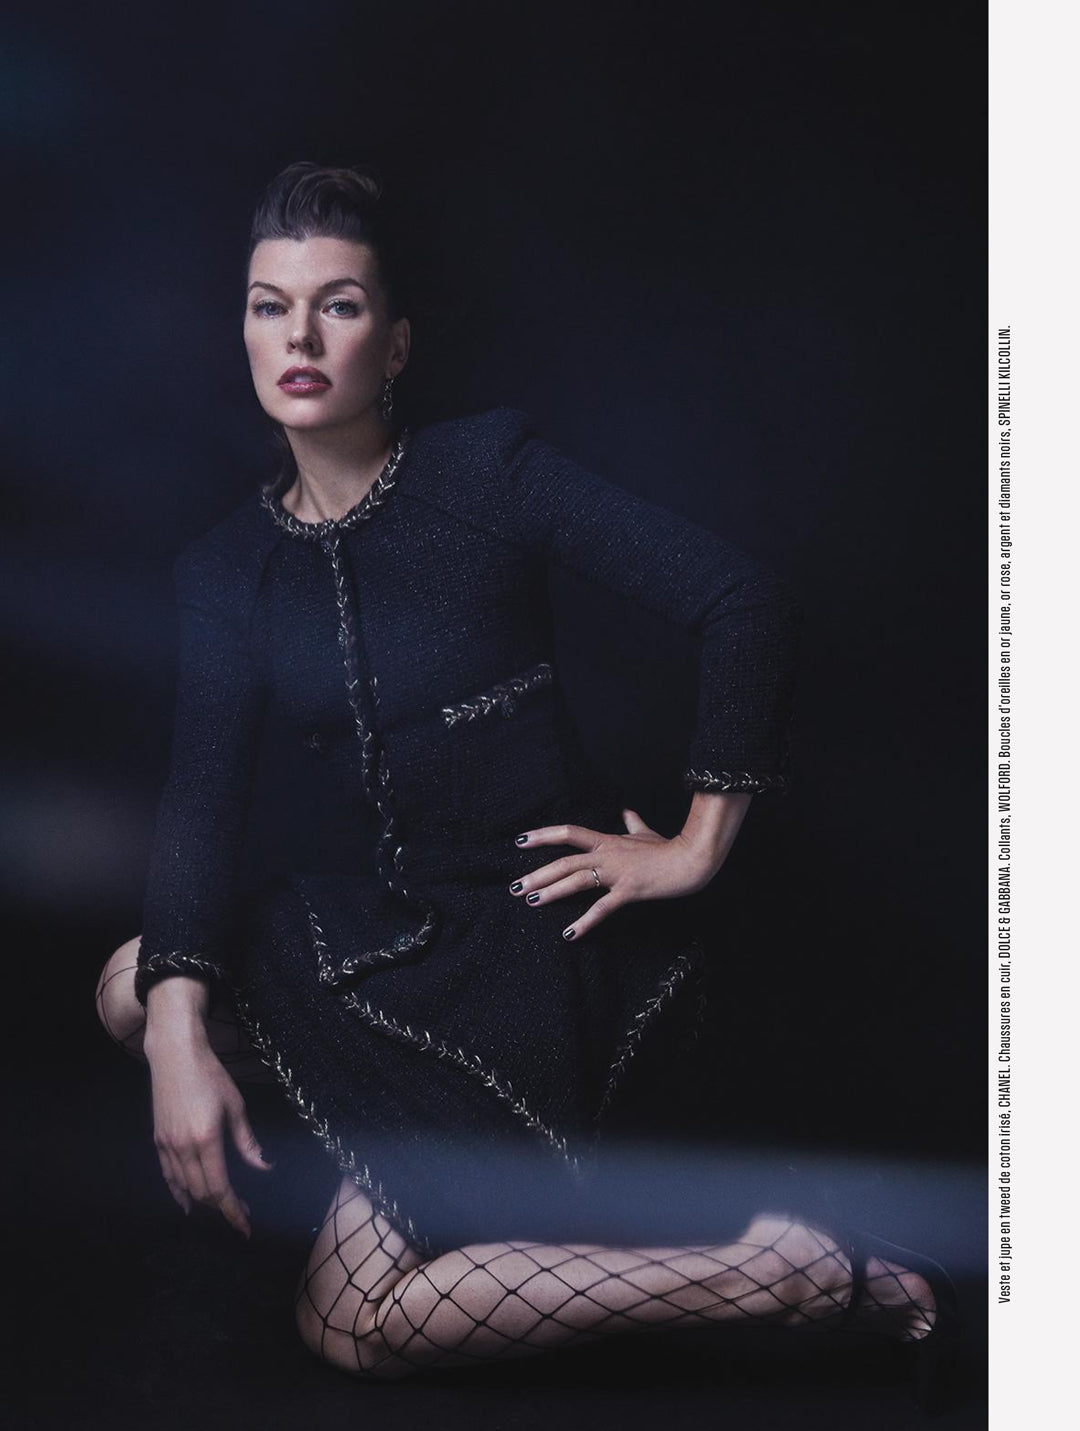 spinelli kilcollin milla jovovich l-express-styles luxury-jewelry linked-rings editorial